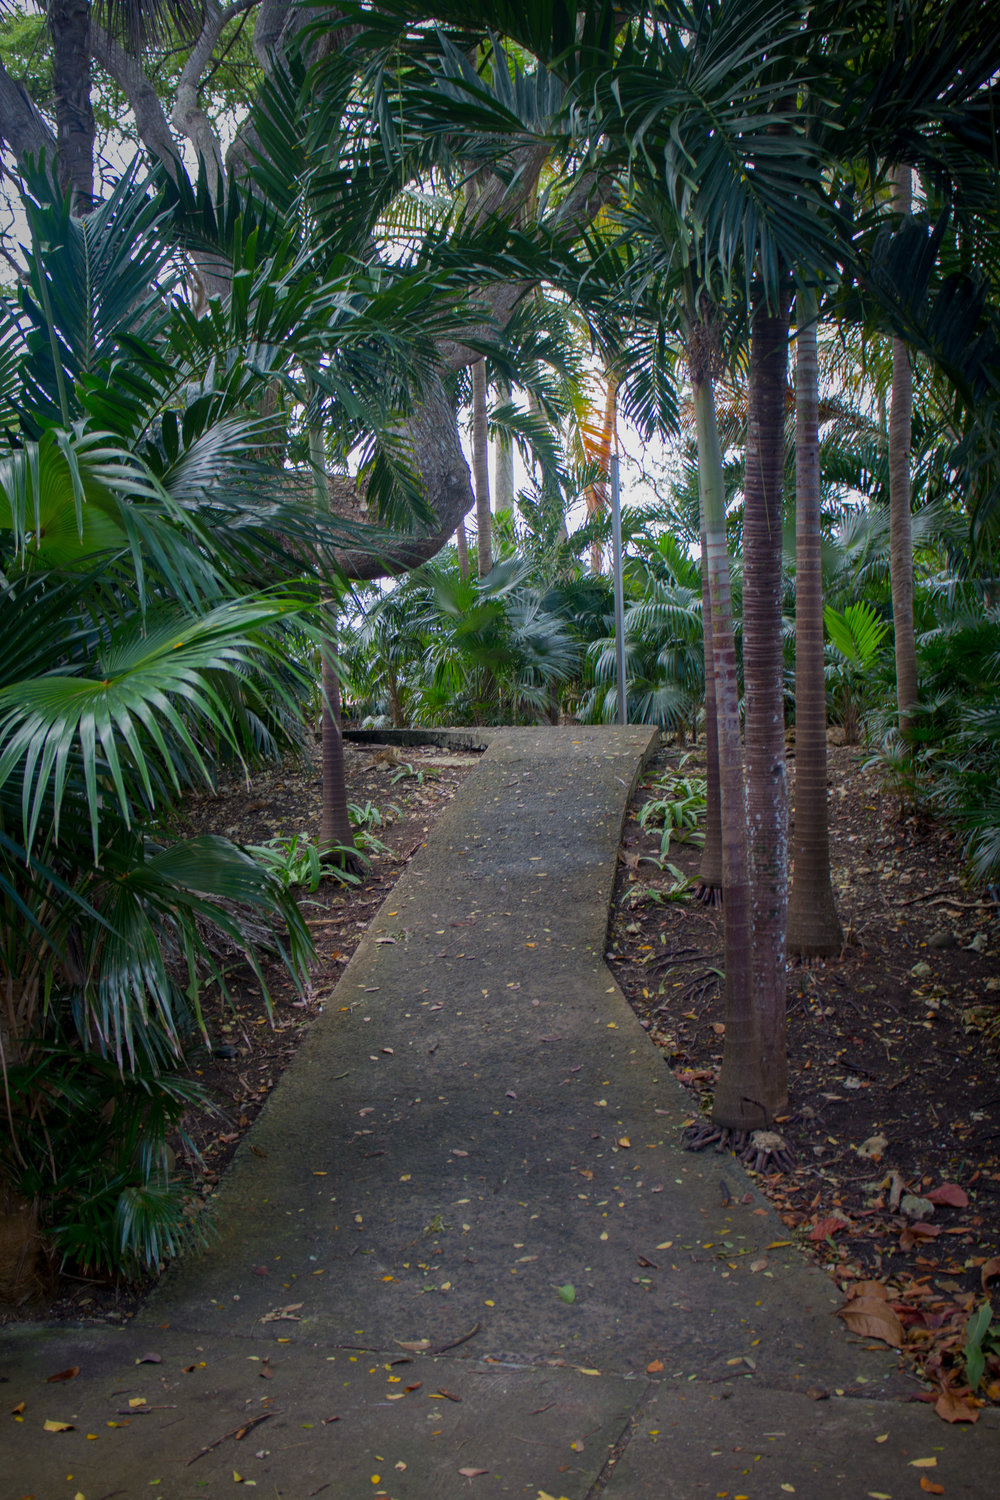 Path up to M. Damoiseau's residence